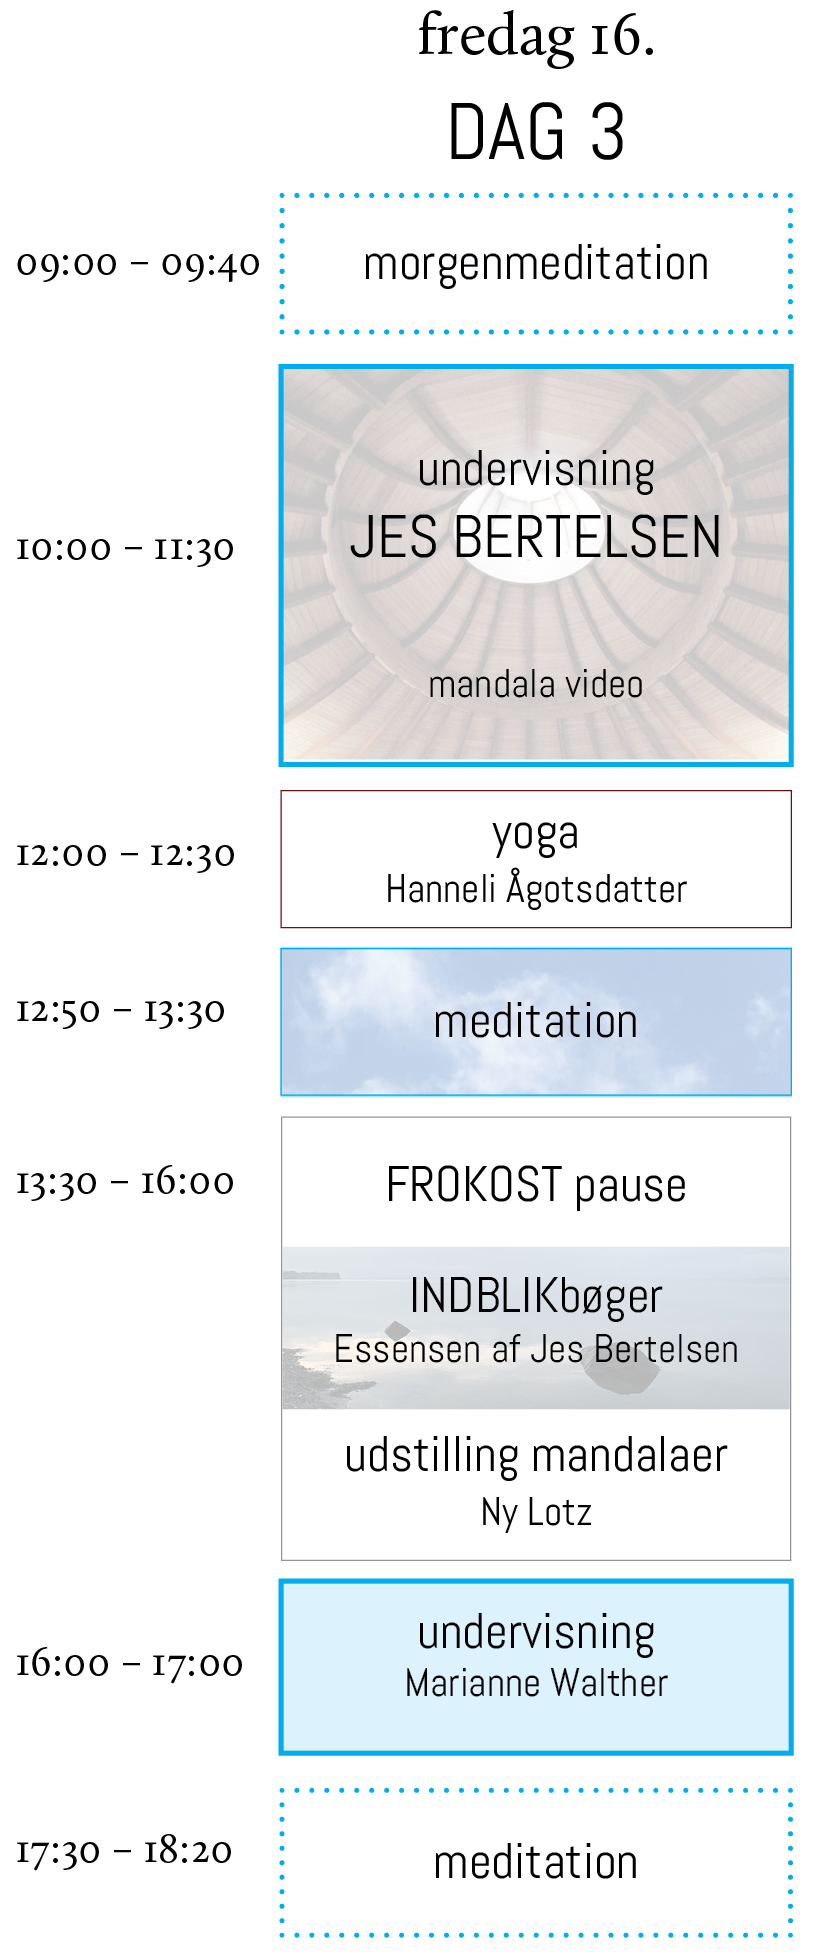 FEJRING_vaekstcenteret_program5